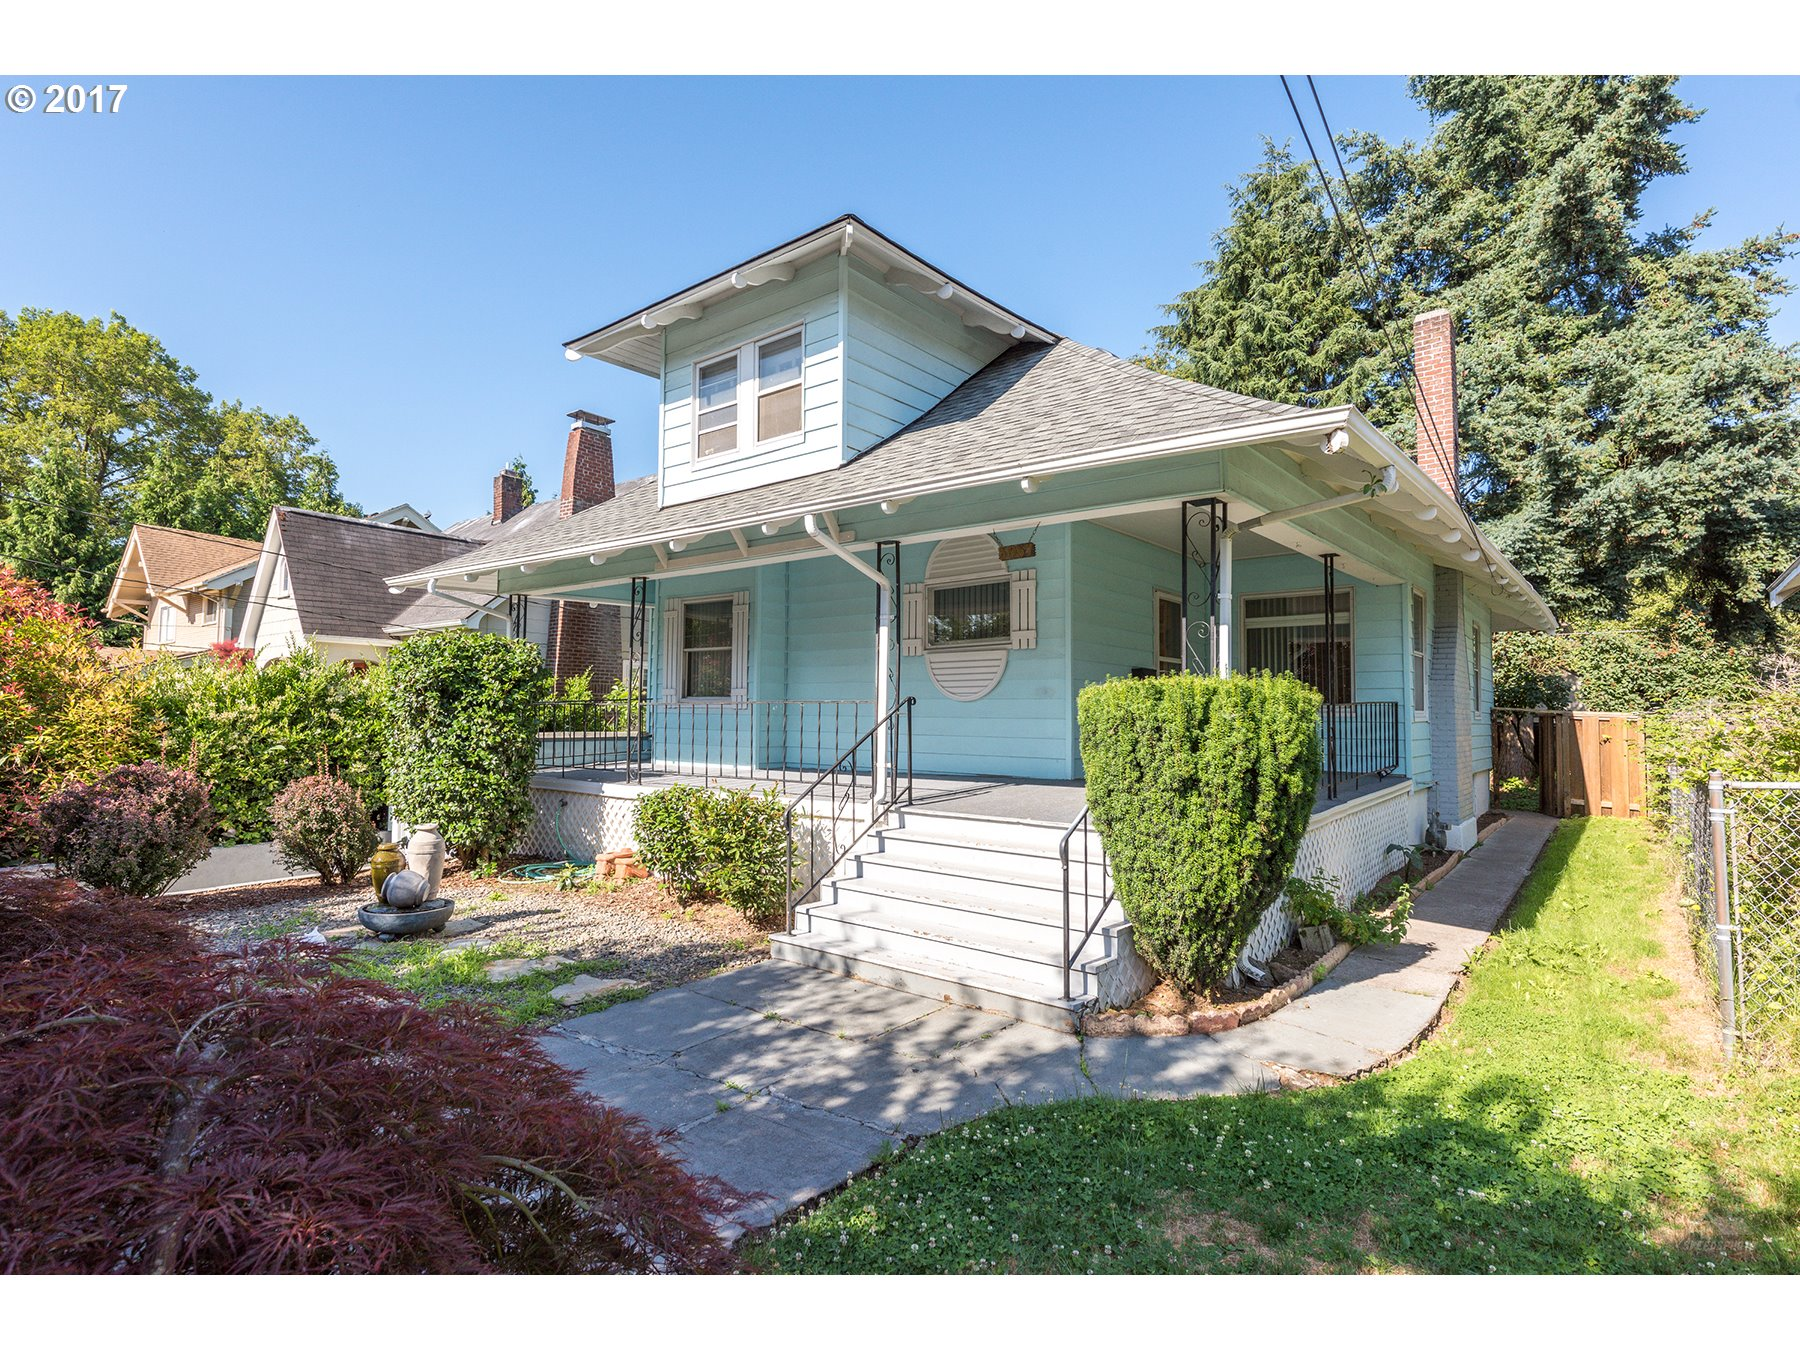 OPEN HOUSE SAT 10/21 12-2PM. PRICE REDUCED 25K! CREATE IMMEDIATE EQUITY HERE. One of a kind Overlook home just waiting for your personal touches to bring it back to the good life and its original Historic Beauty. This home is located in an established neighborhood on a quiet, tree-lined street. Overlook Park is just minutes away and filled with walking paths and a dog park.